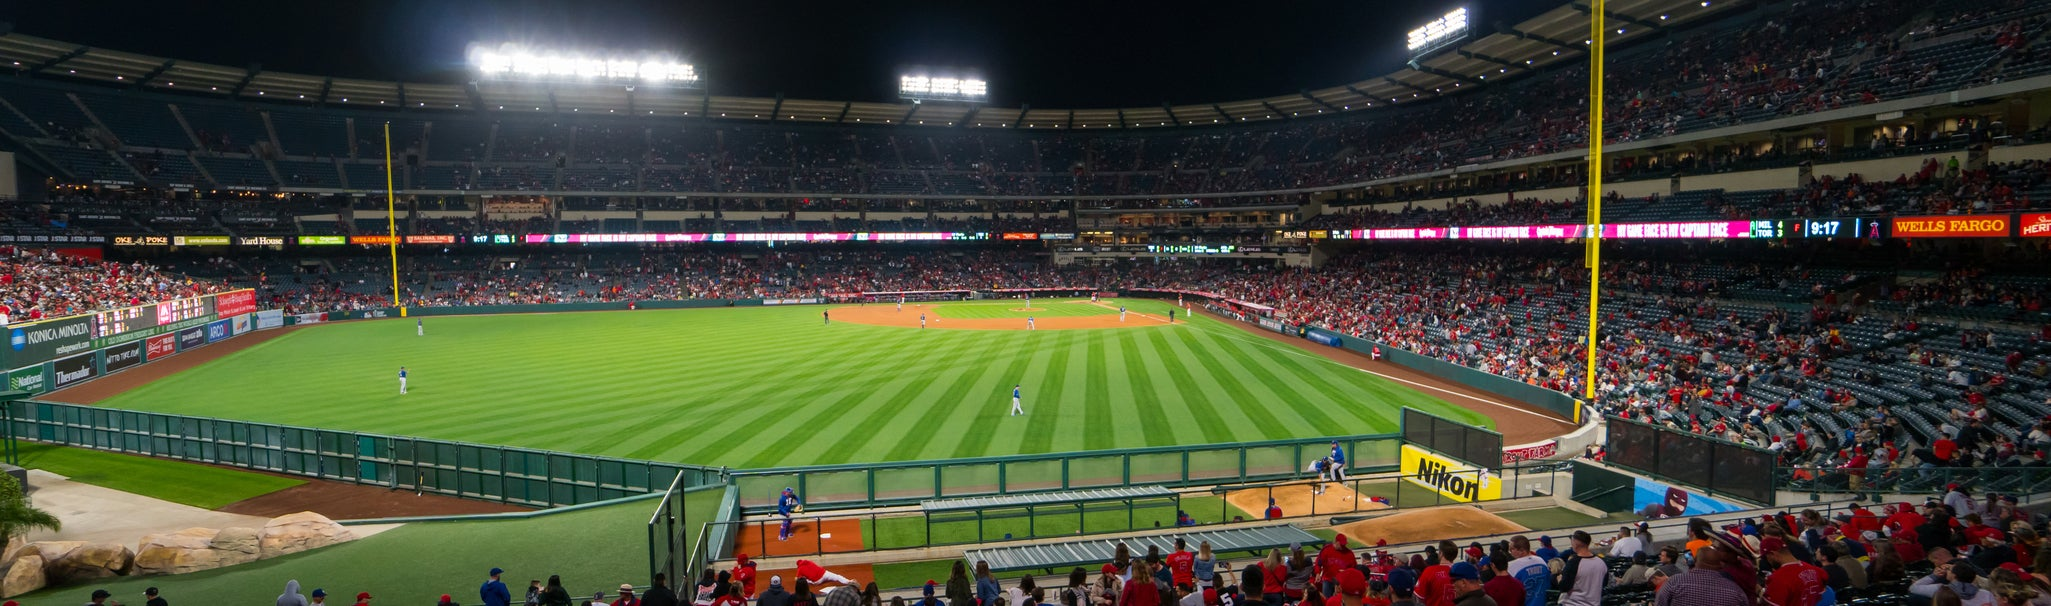 Seat view from Left Field Pavilion